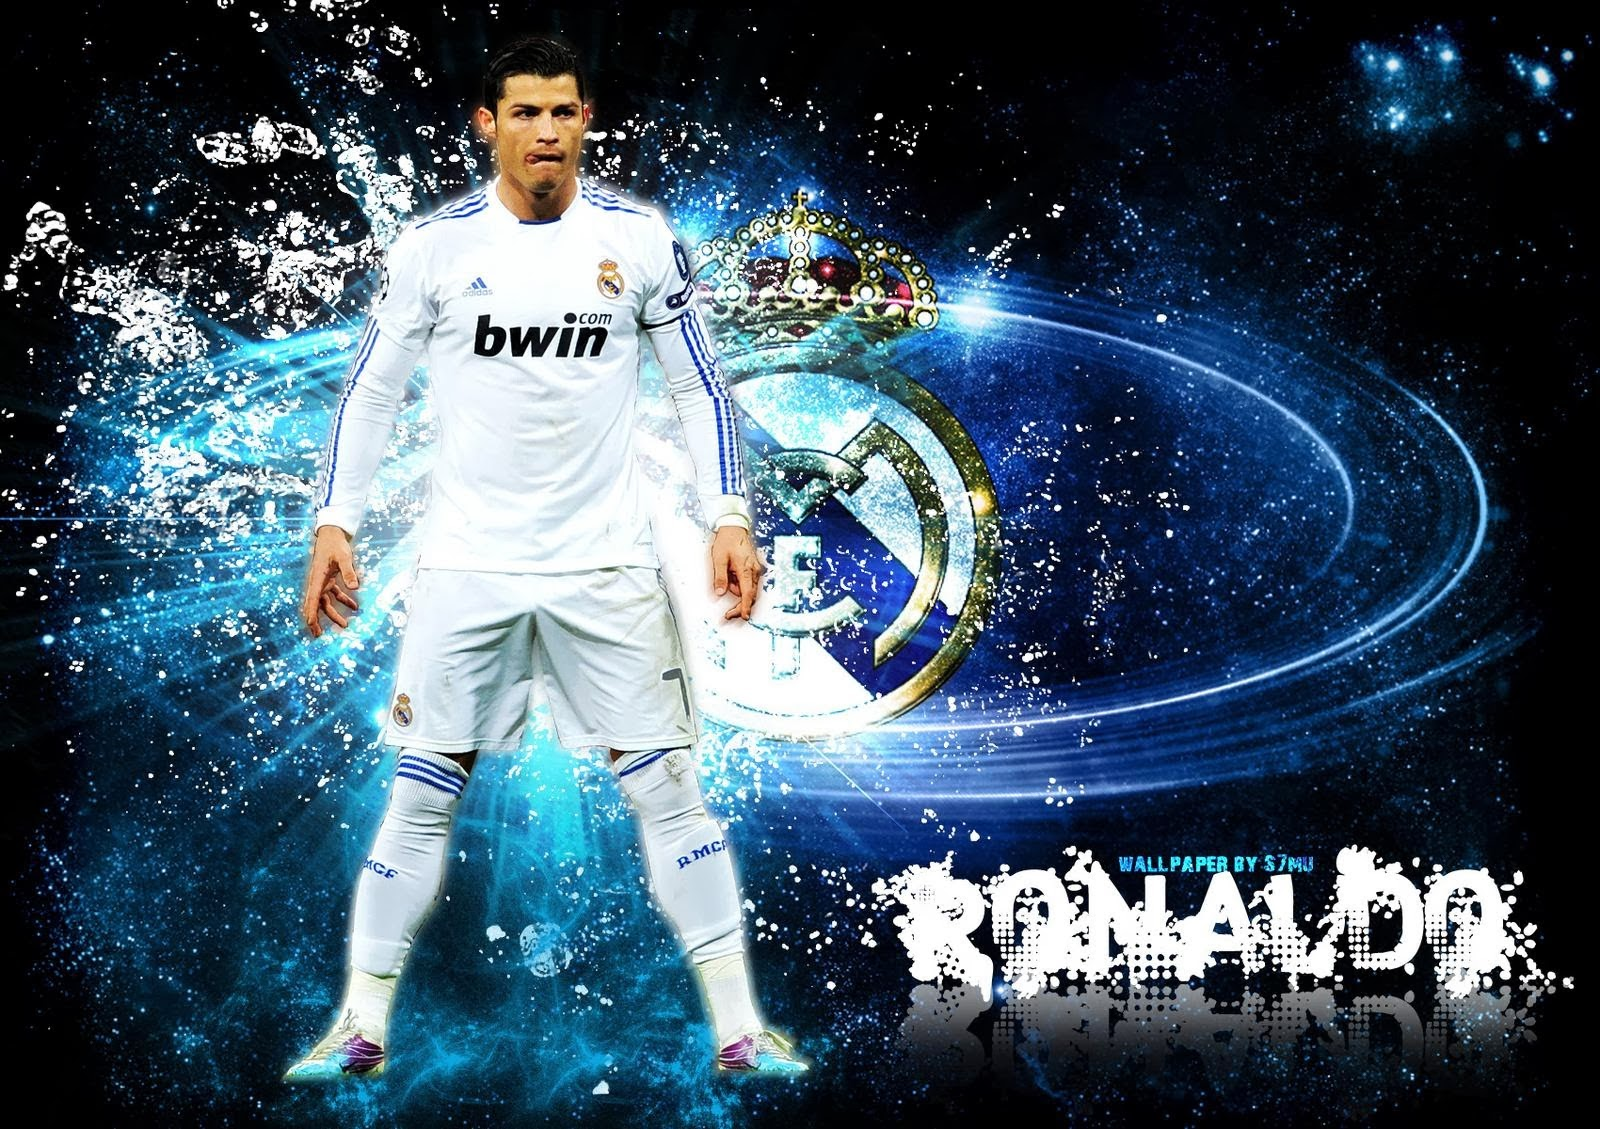 cristiano ronaldo hd wallpapers free download - free hd wallpapers